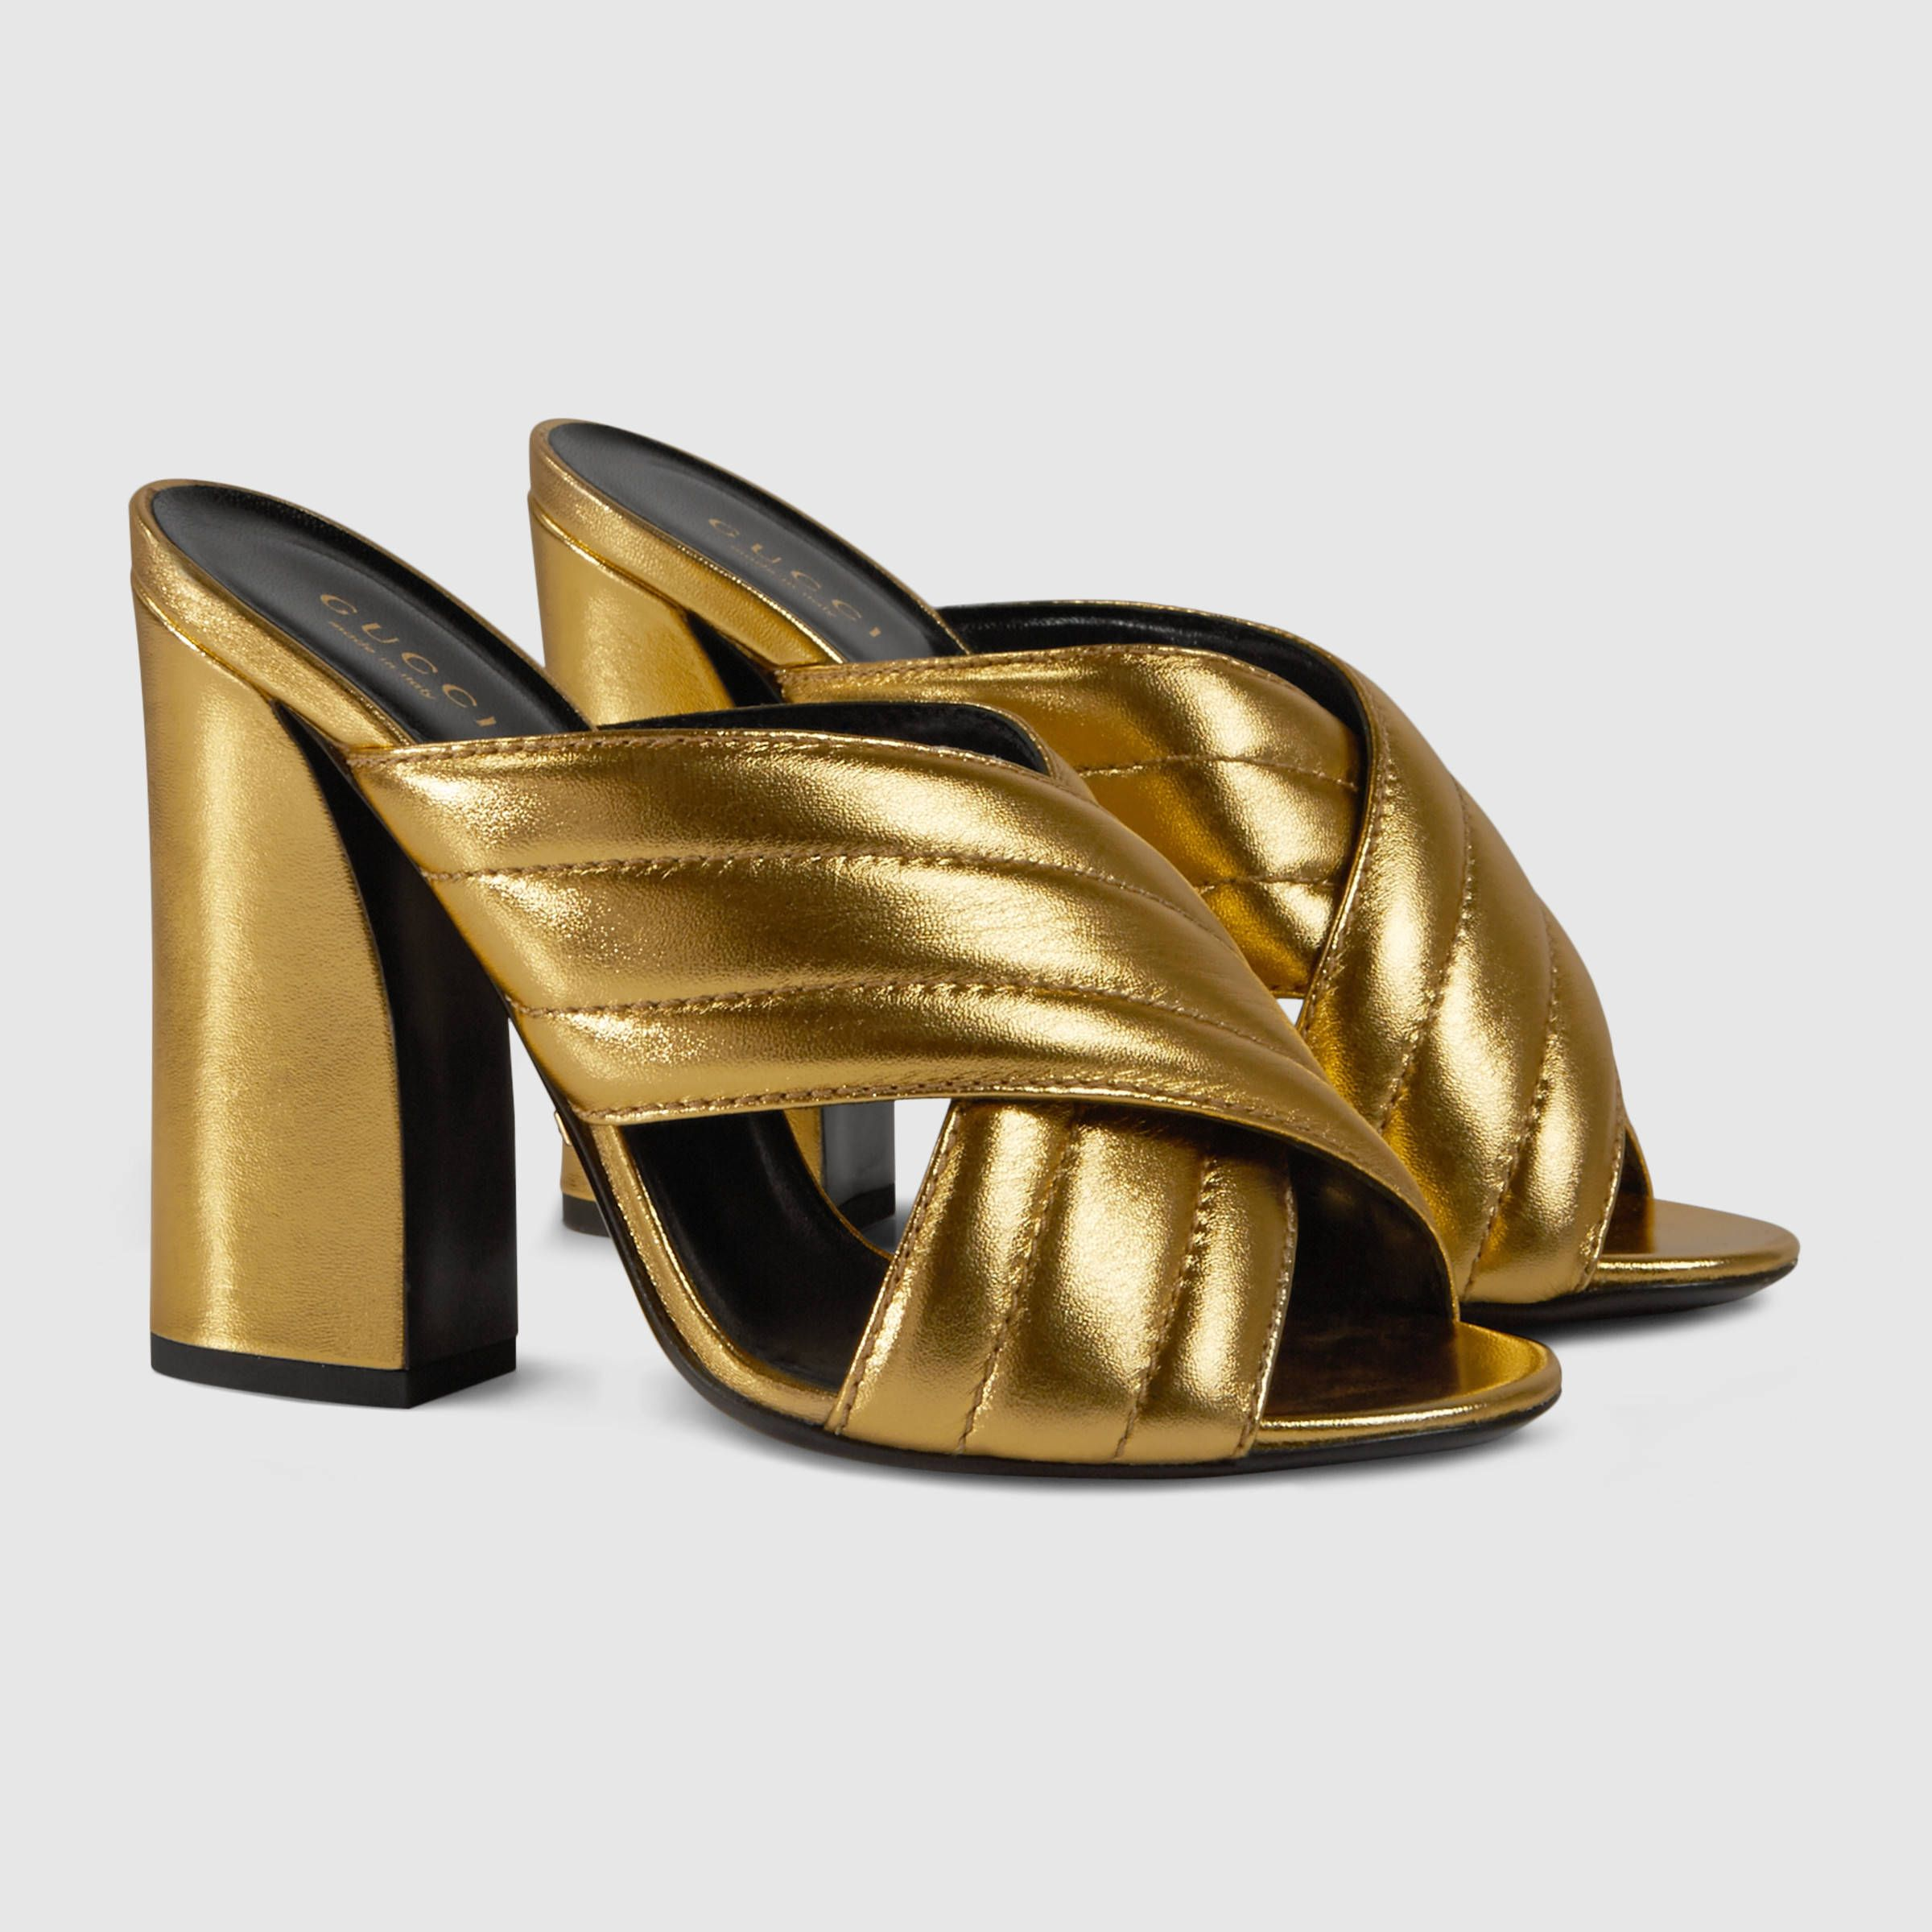 21b9ecc039ca Gucci Women - Gucci Metallic Gold crossover sandal -  595.00 ...